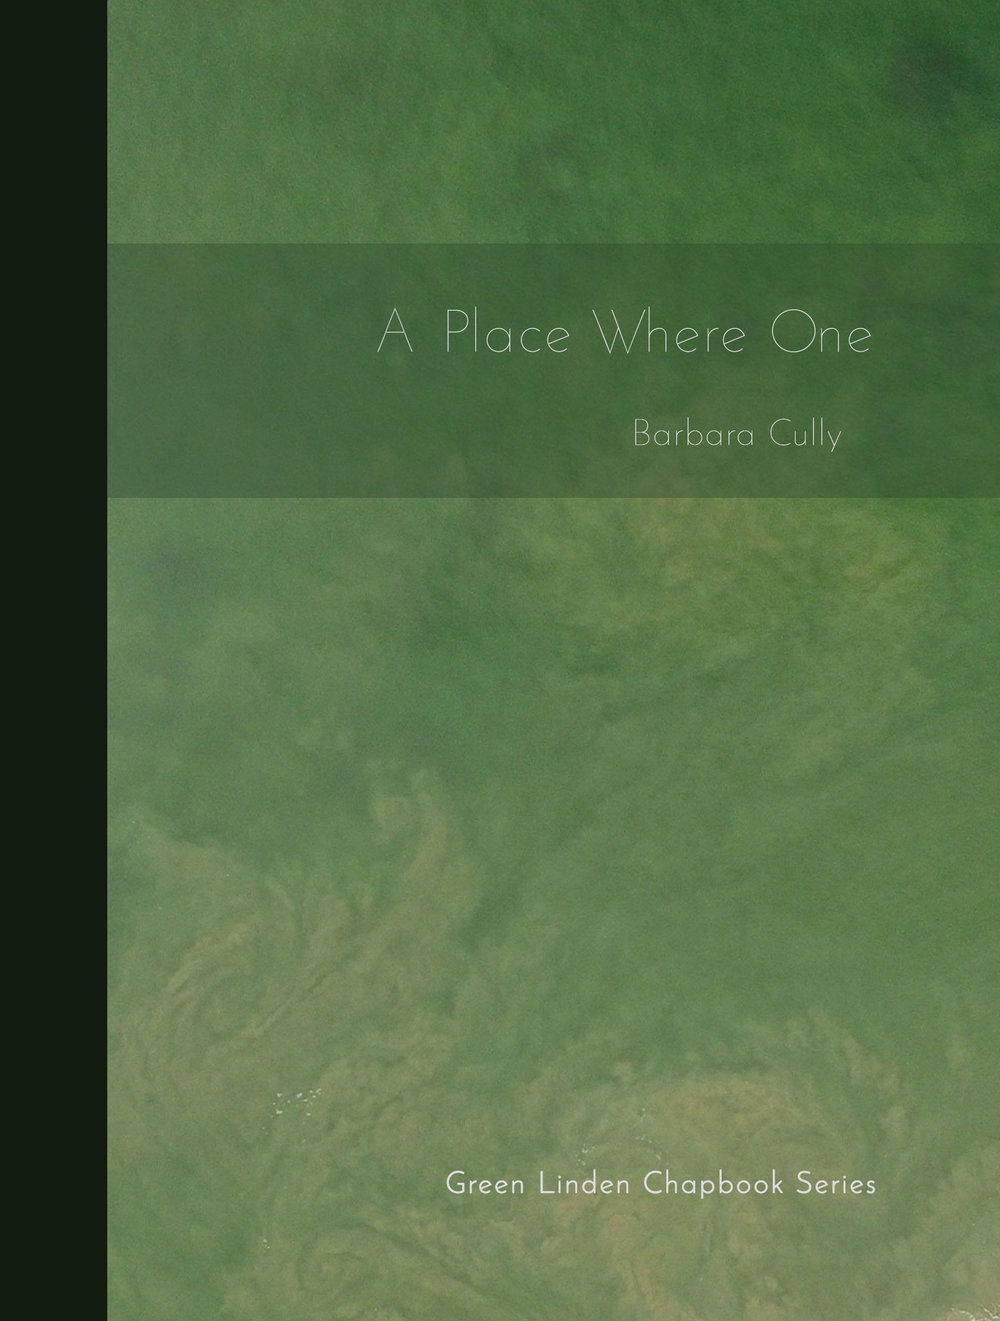 chapbook Barbara Cully's A Place Where One